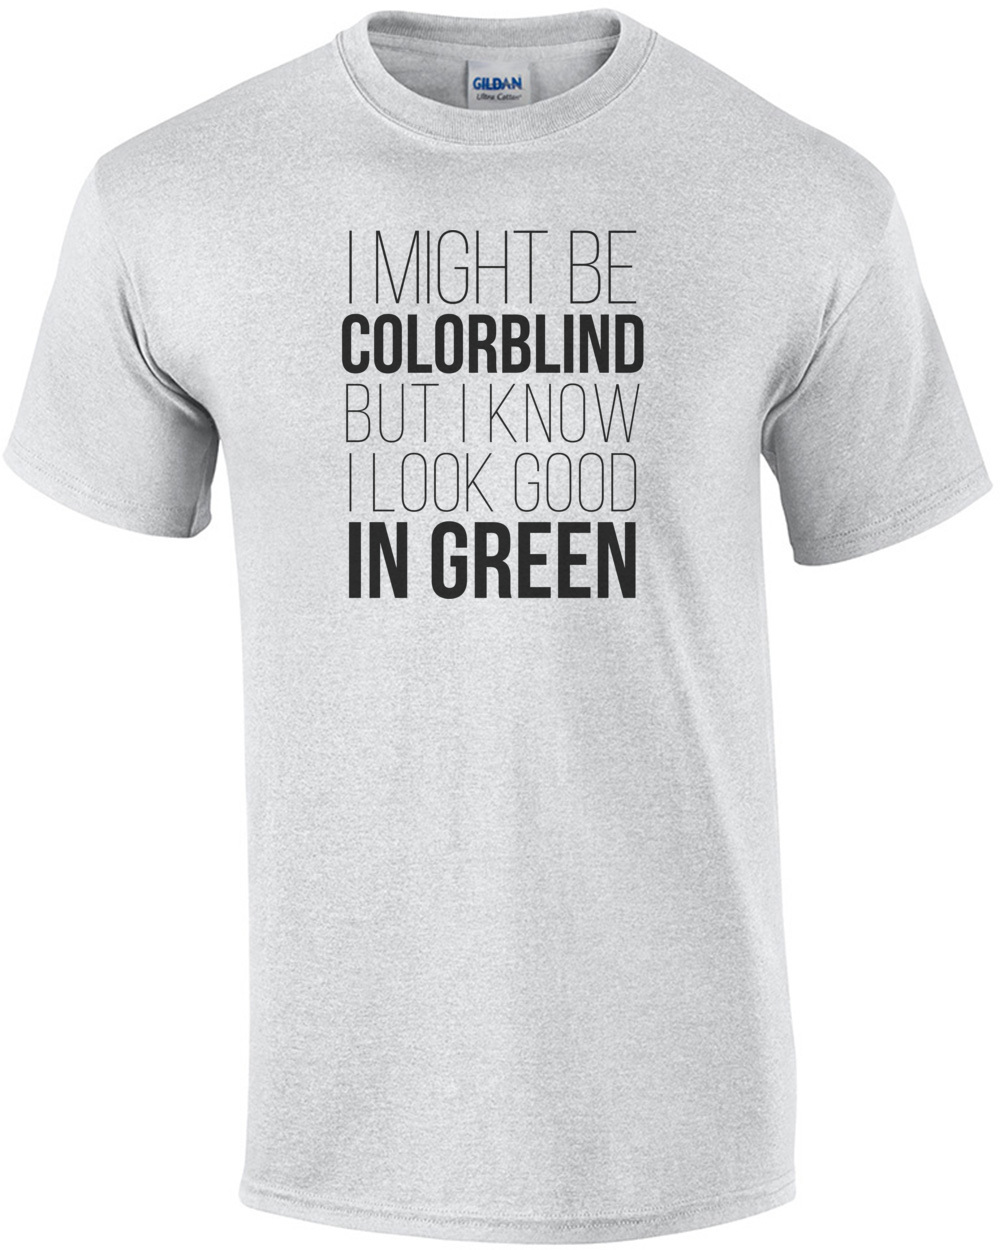 75d34347 i-might-be-colorblind-but-i-know-i-look-good-in-green--funny-tshirt -mens-regular-ash.jpg